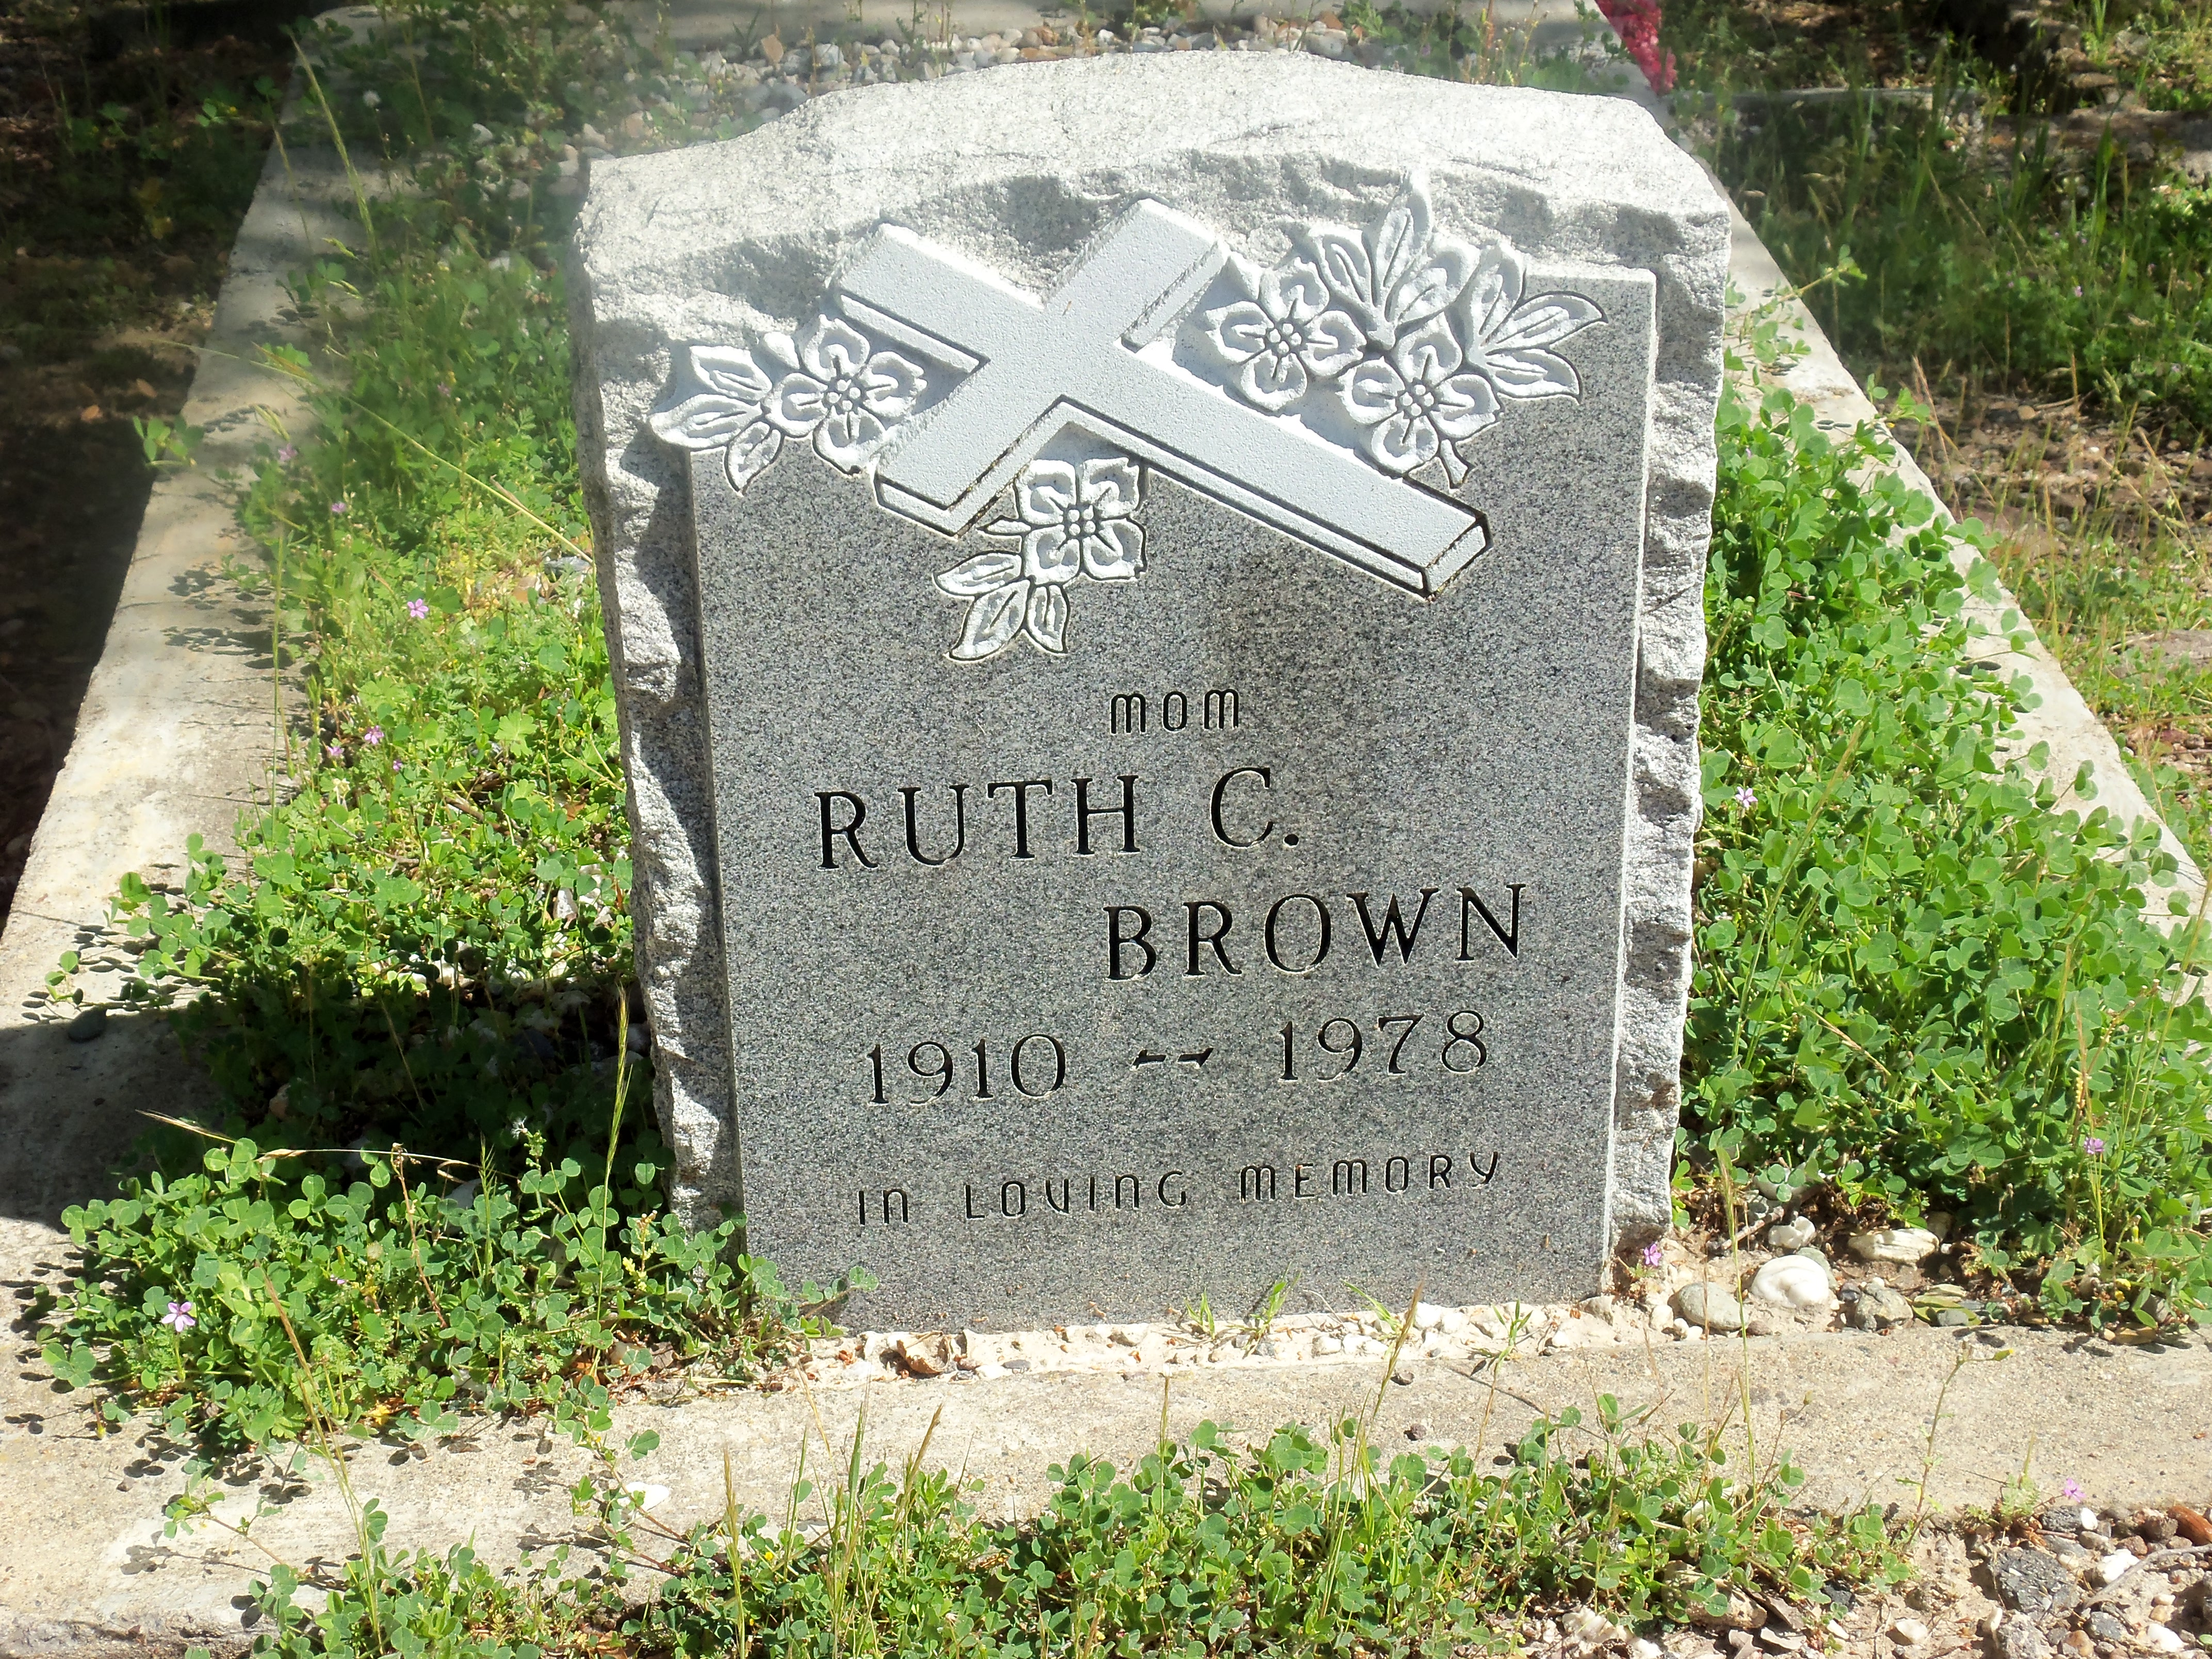 Ruth C Brown